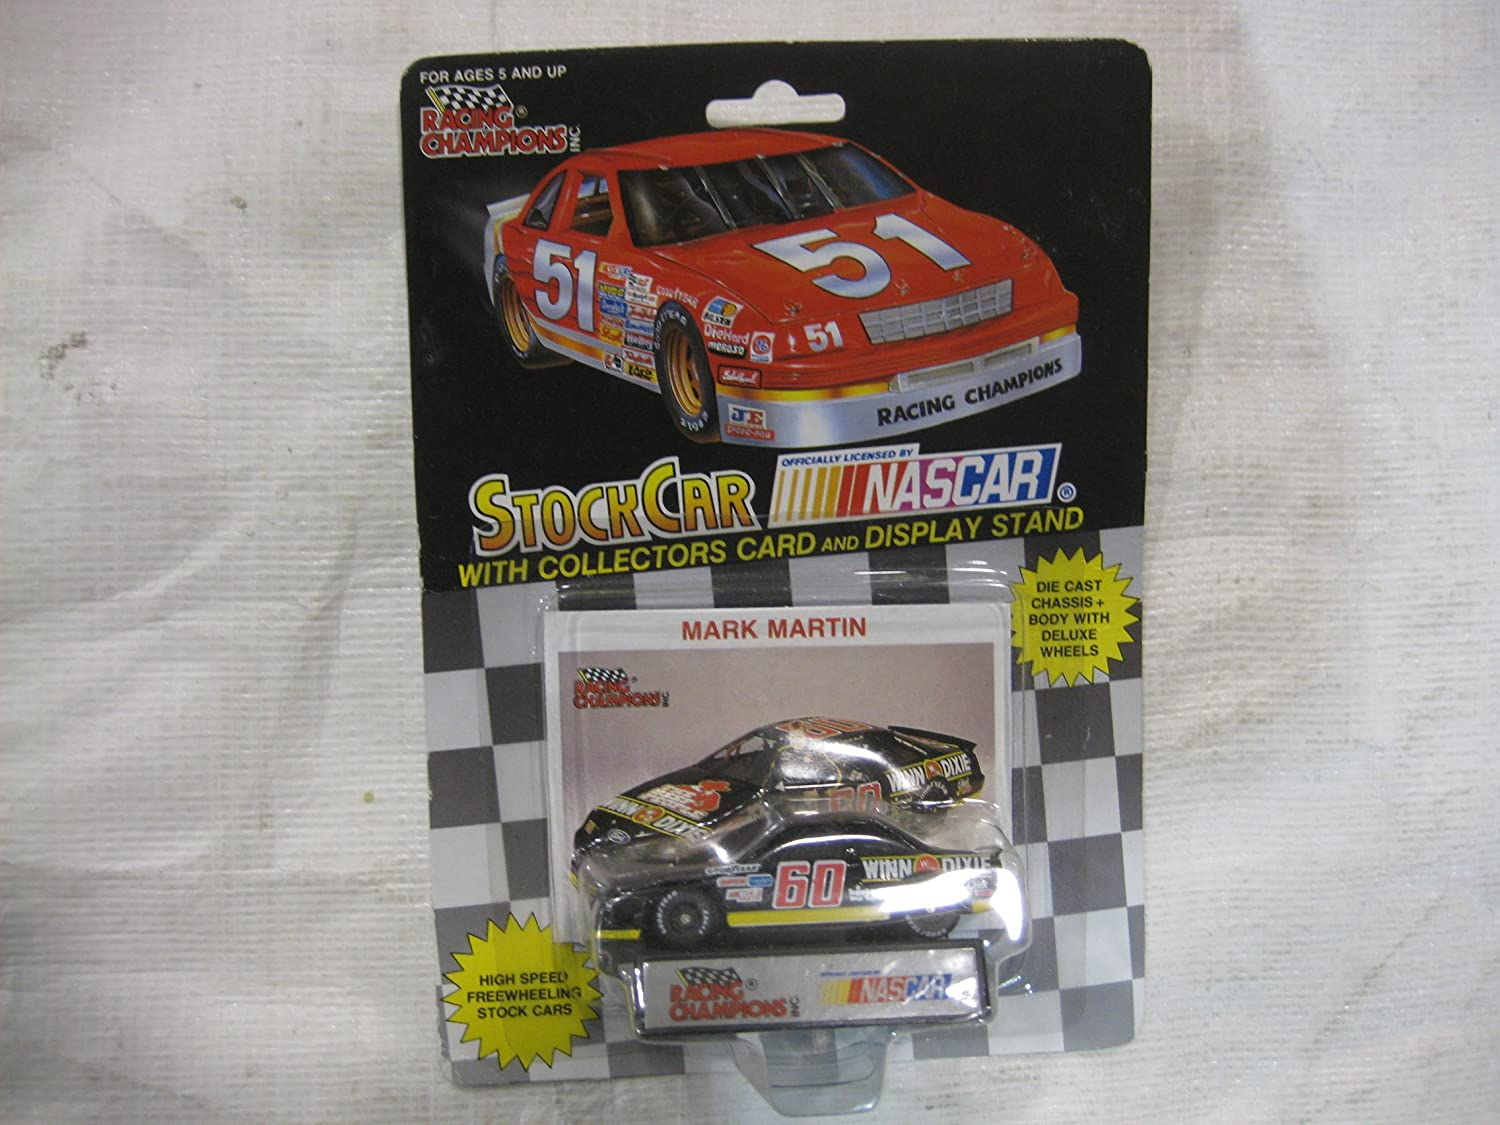 Review of winn dixie free appliances - Amazon Com Nascar 60 Mark Martin Winn Dixie Racing Team Stock Car With Driver S Collectors Card And Display Stand Racing Champions Black Background Red